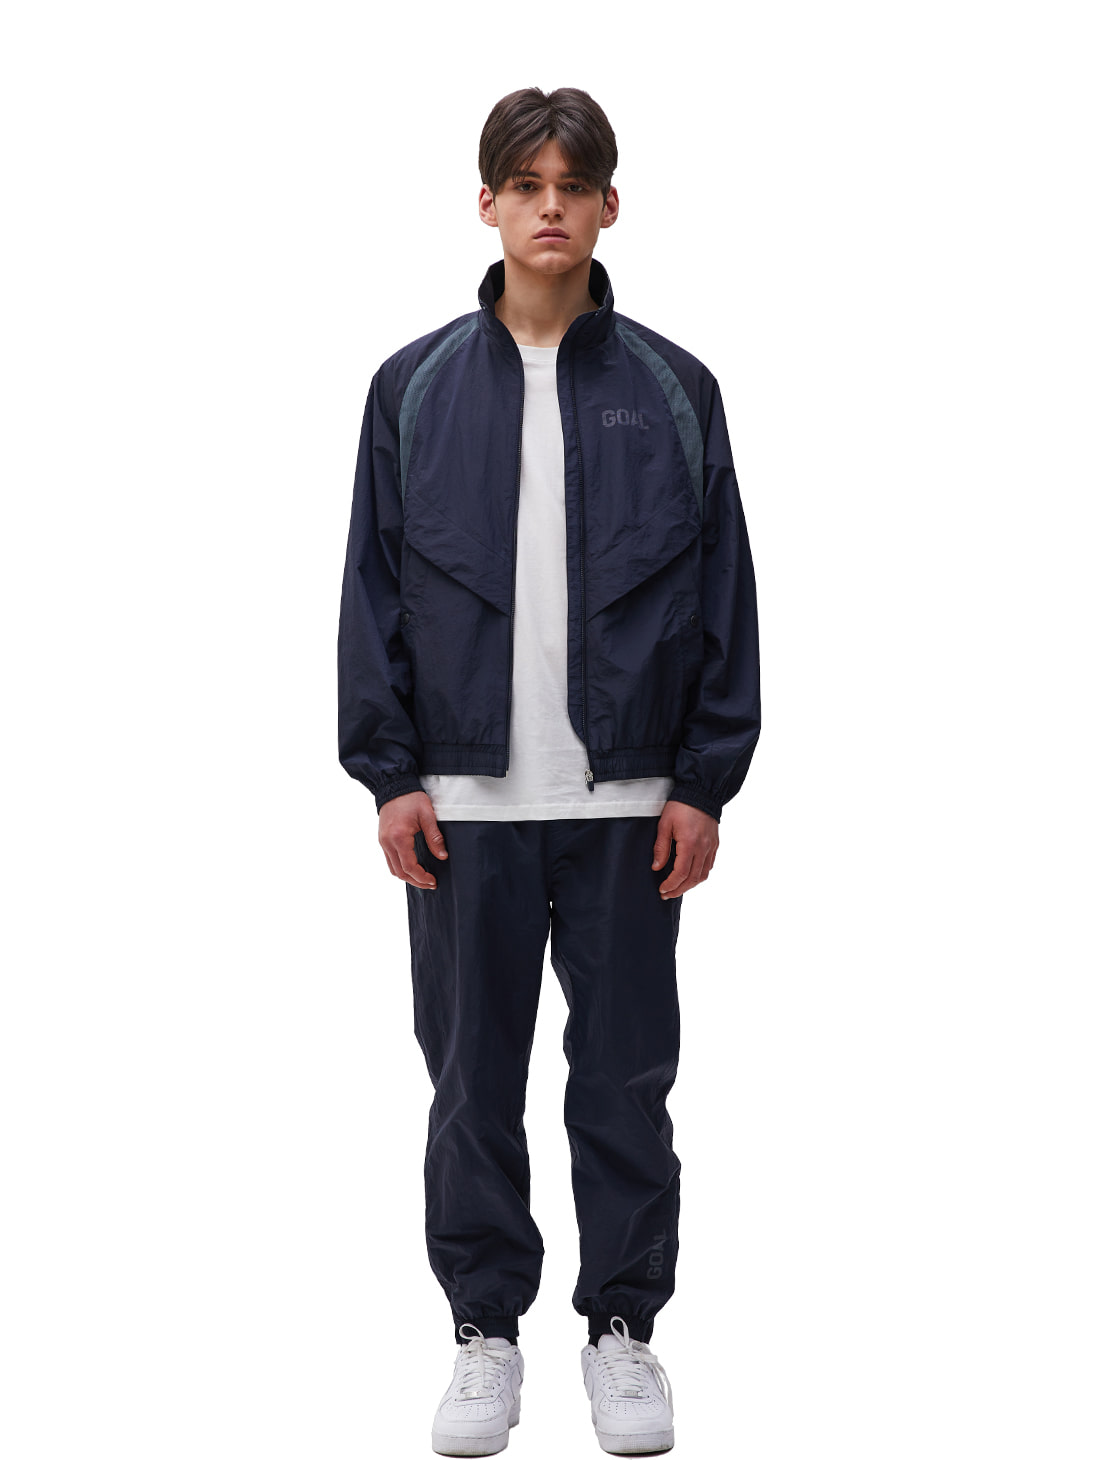 GOALSTUDIO [10% OFF] WARMUP JACKET & PANTS SET - NAVY